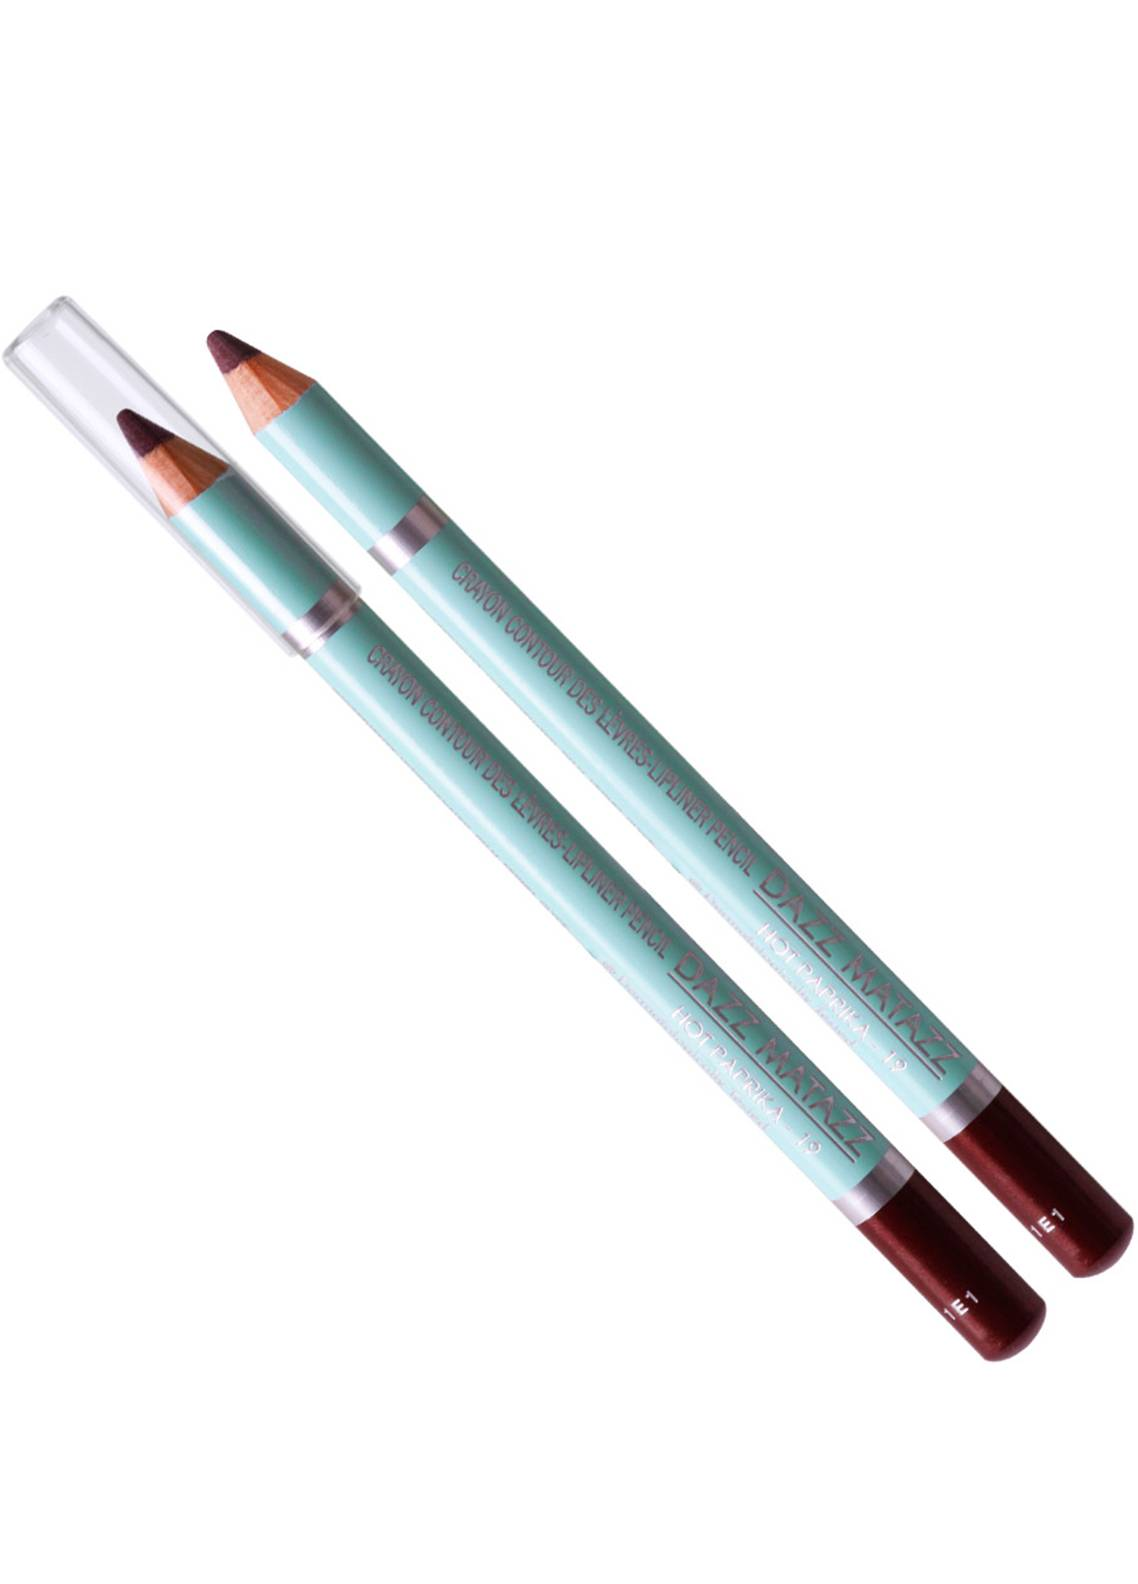 Dazz Matazz Lip Liner Pencil-19 HOT PAPRIKA